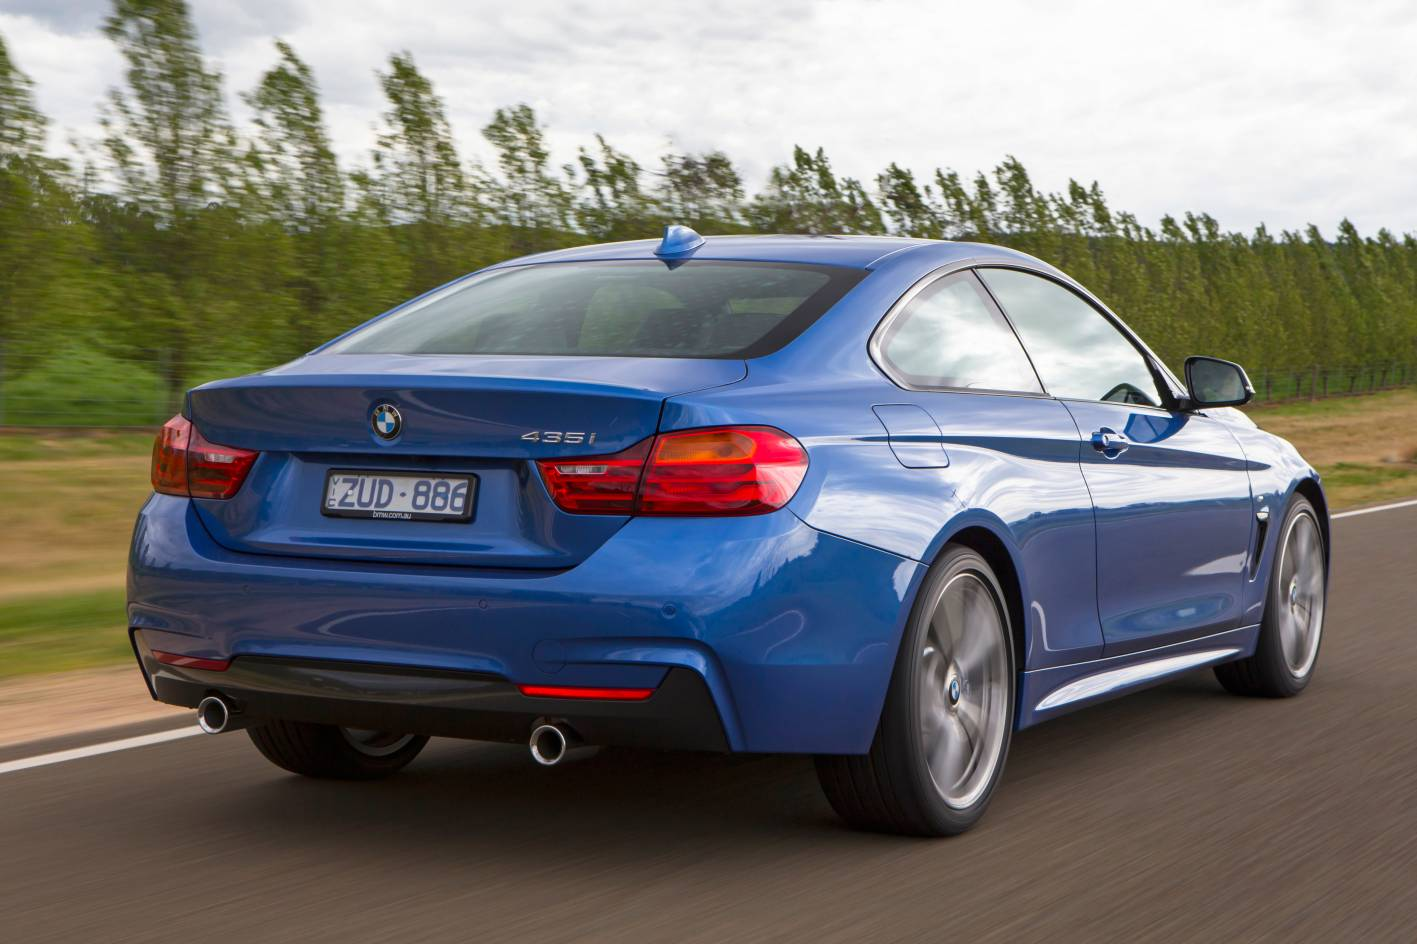 BMW 4 series 428i 2013 photo - 7